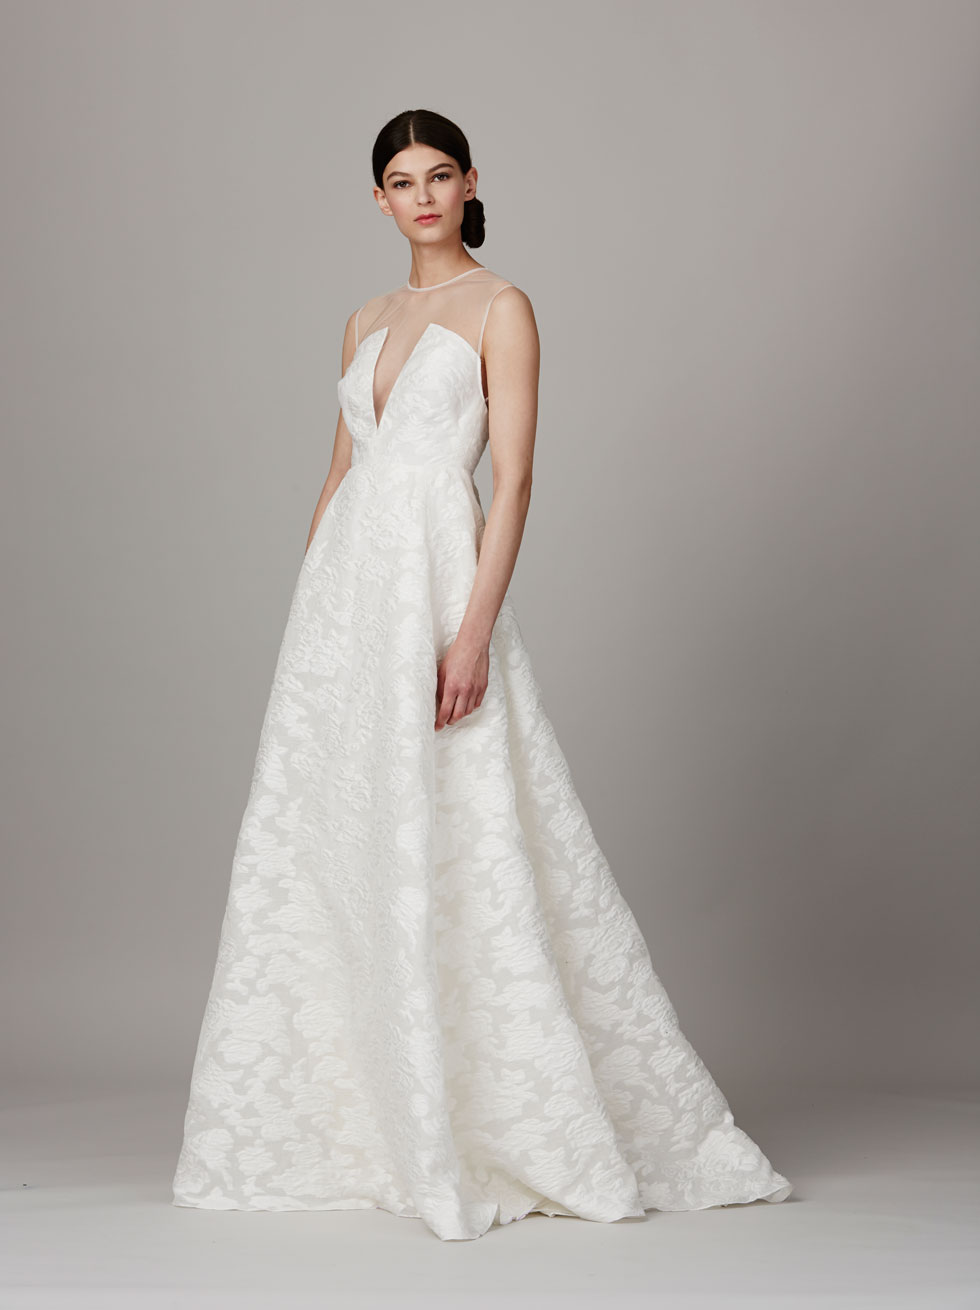 Lela Rose Wedding Dresses Nyc : Lela rose bridal collection see